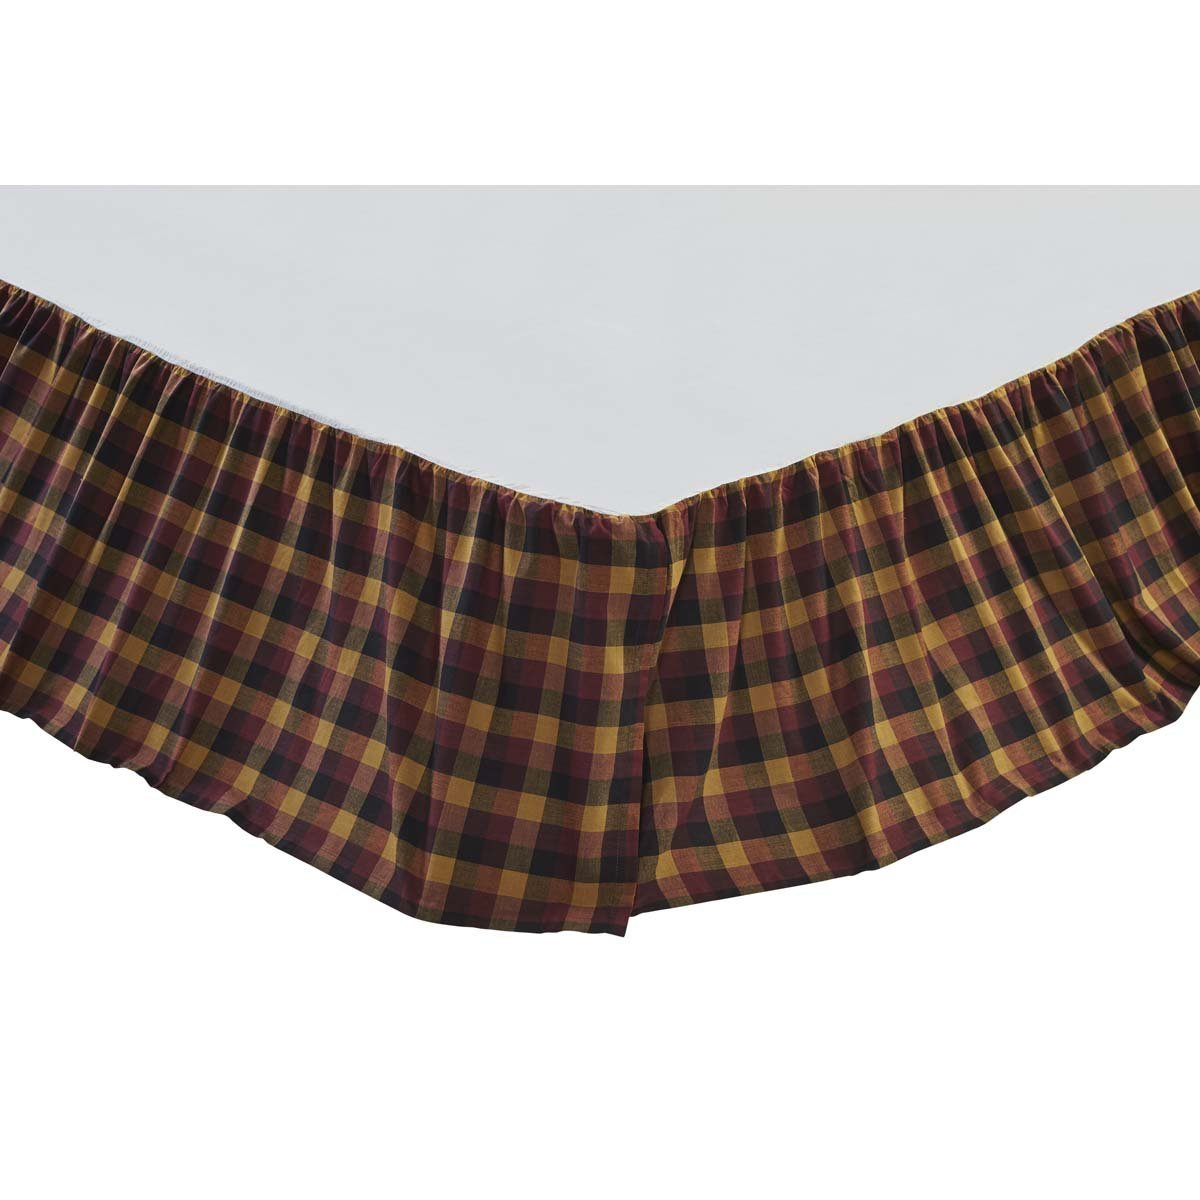 Primitive Check Bed Skirt.